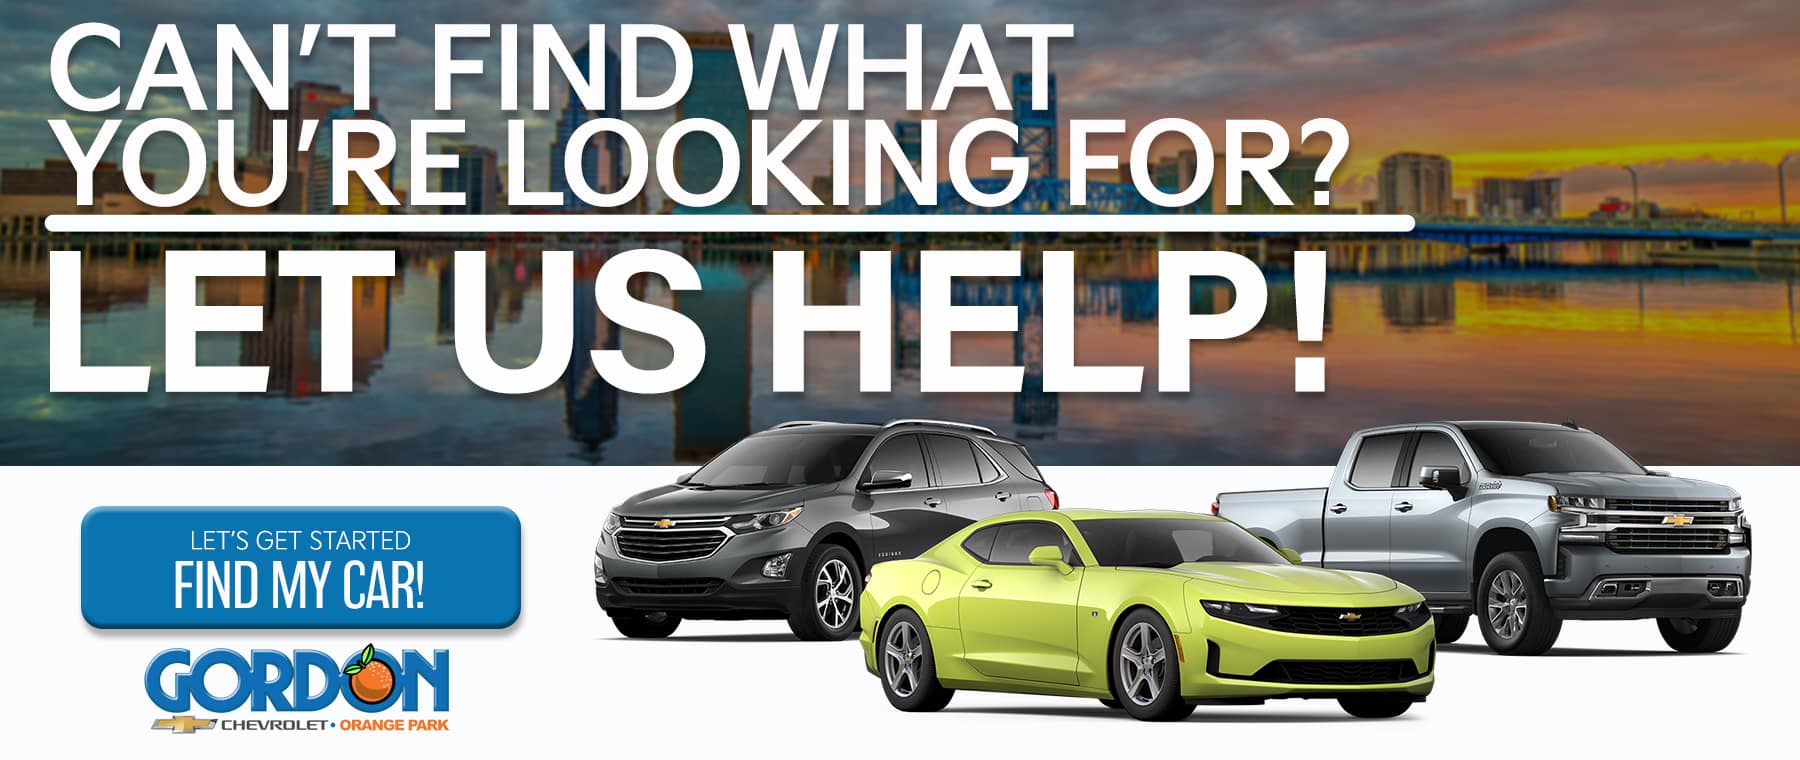 We'll Find Your Car